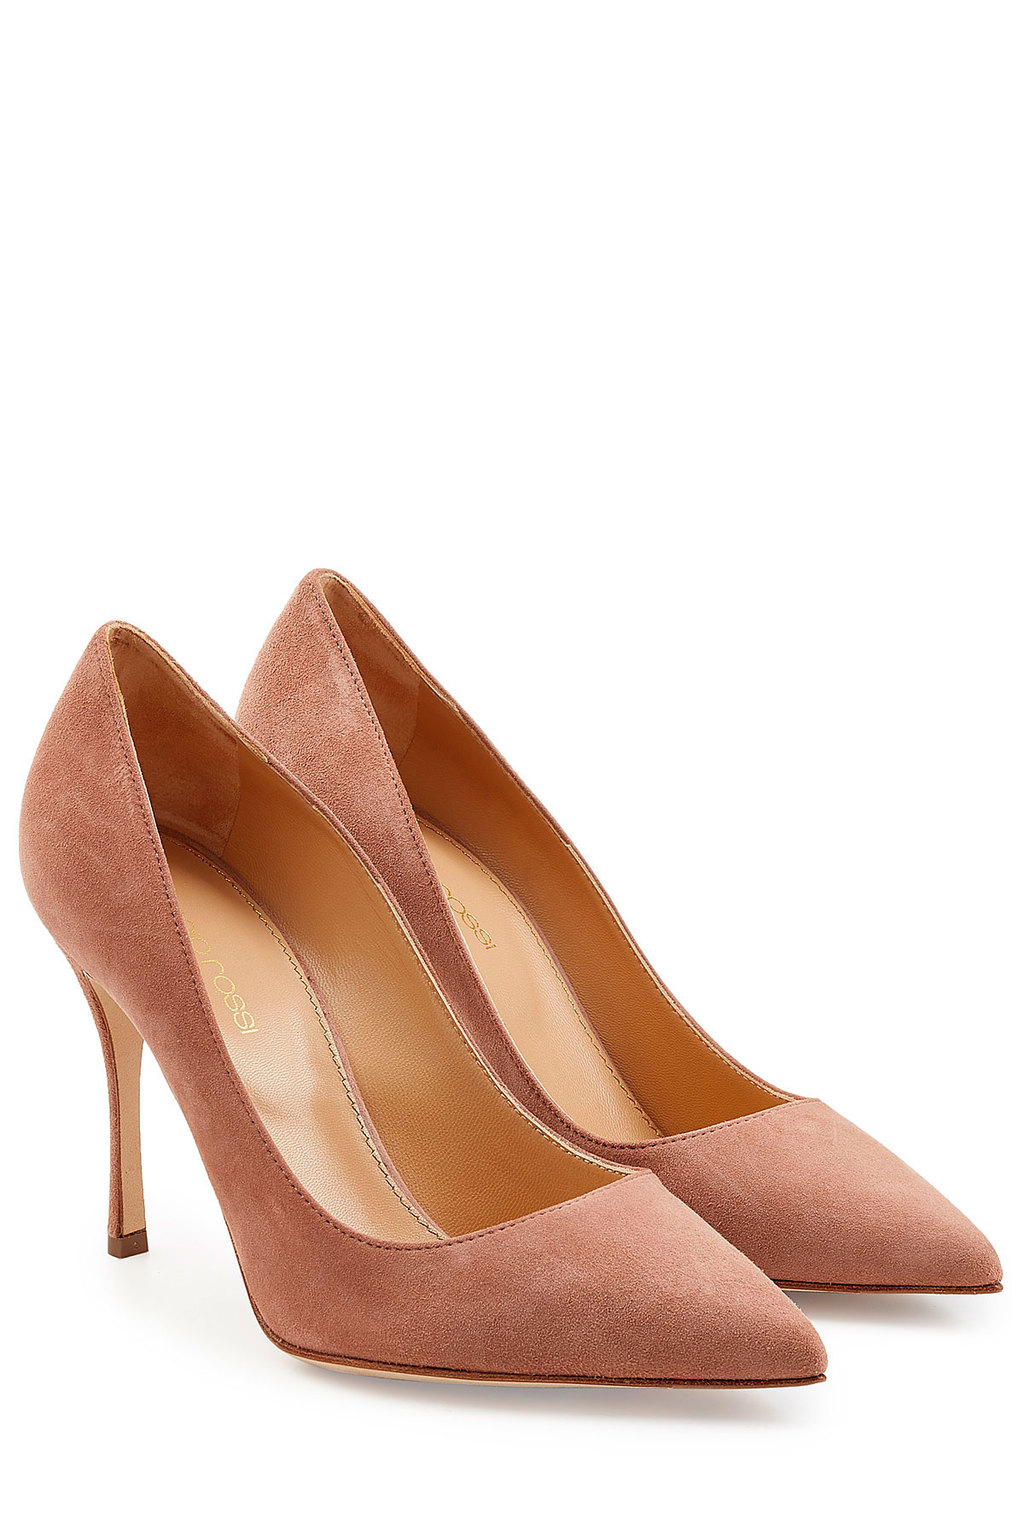 Suede Pumps Rose - predominant colour: camel; occasions: evening, creative work; material: suede; heel height: high; heel: stiletto; toe: pointed toe; style: courts; finish: plain; pattern: plain; season: a/w 2015; wardrobe: investment